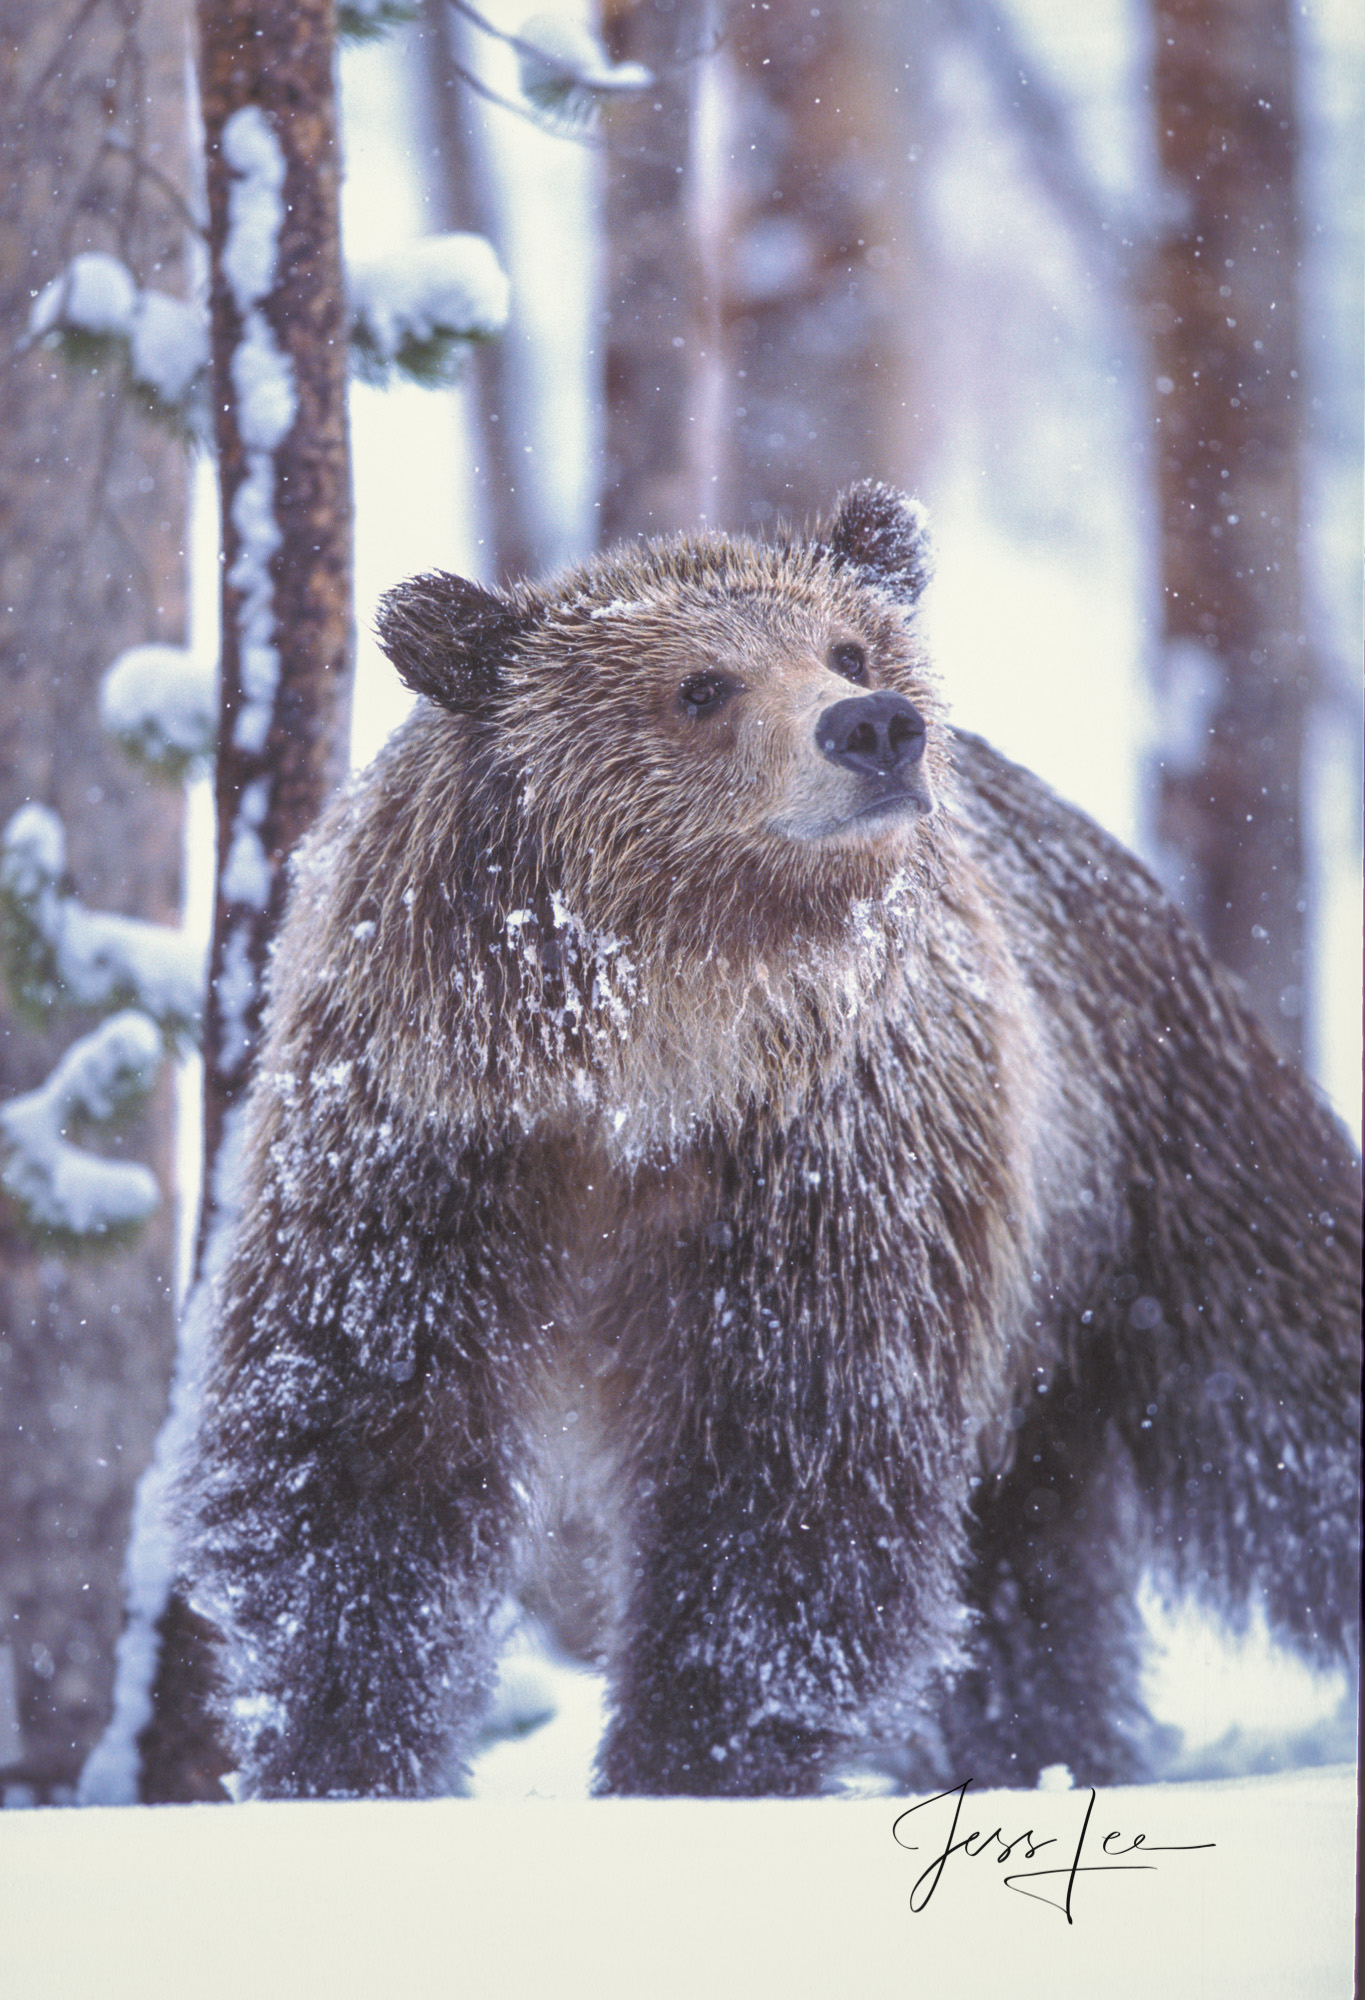 Yellowstone Grizzly in spring snow storm seems curious as it looks at a photographer. Limited edition of 800 prints. These Grizzly...